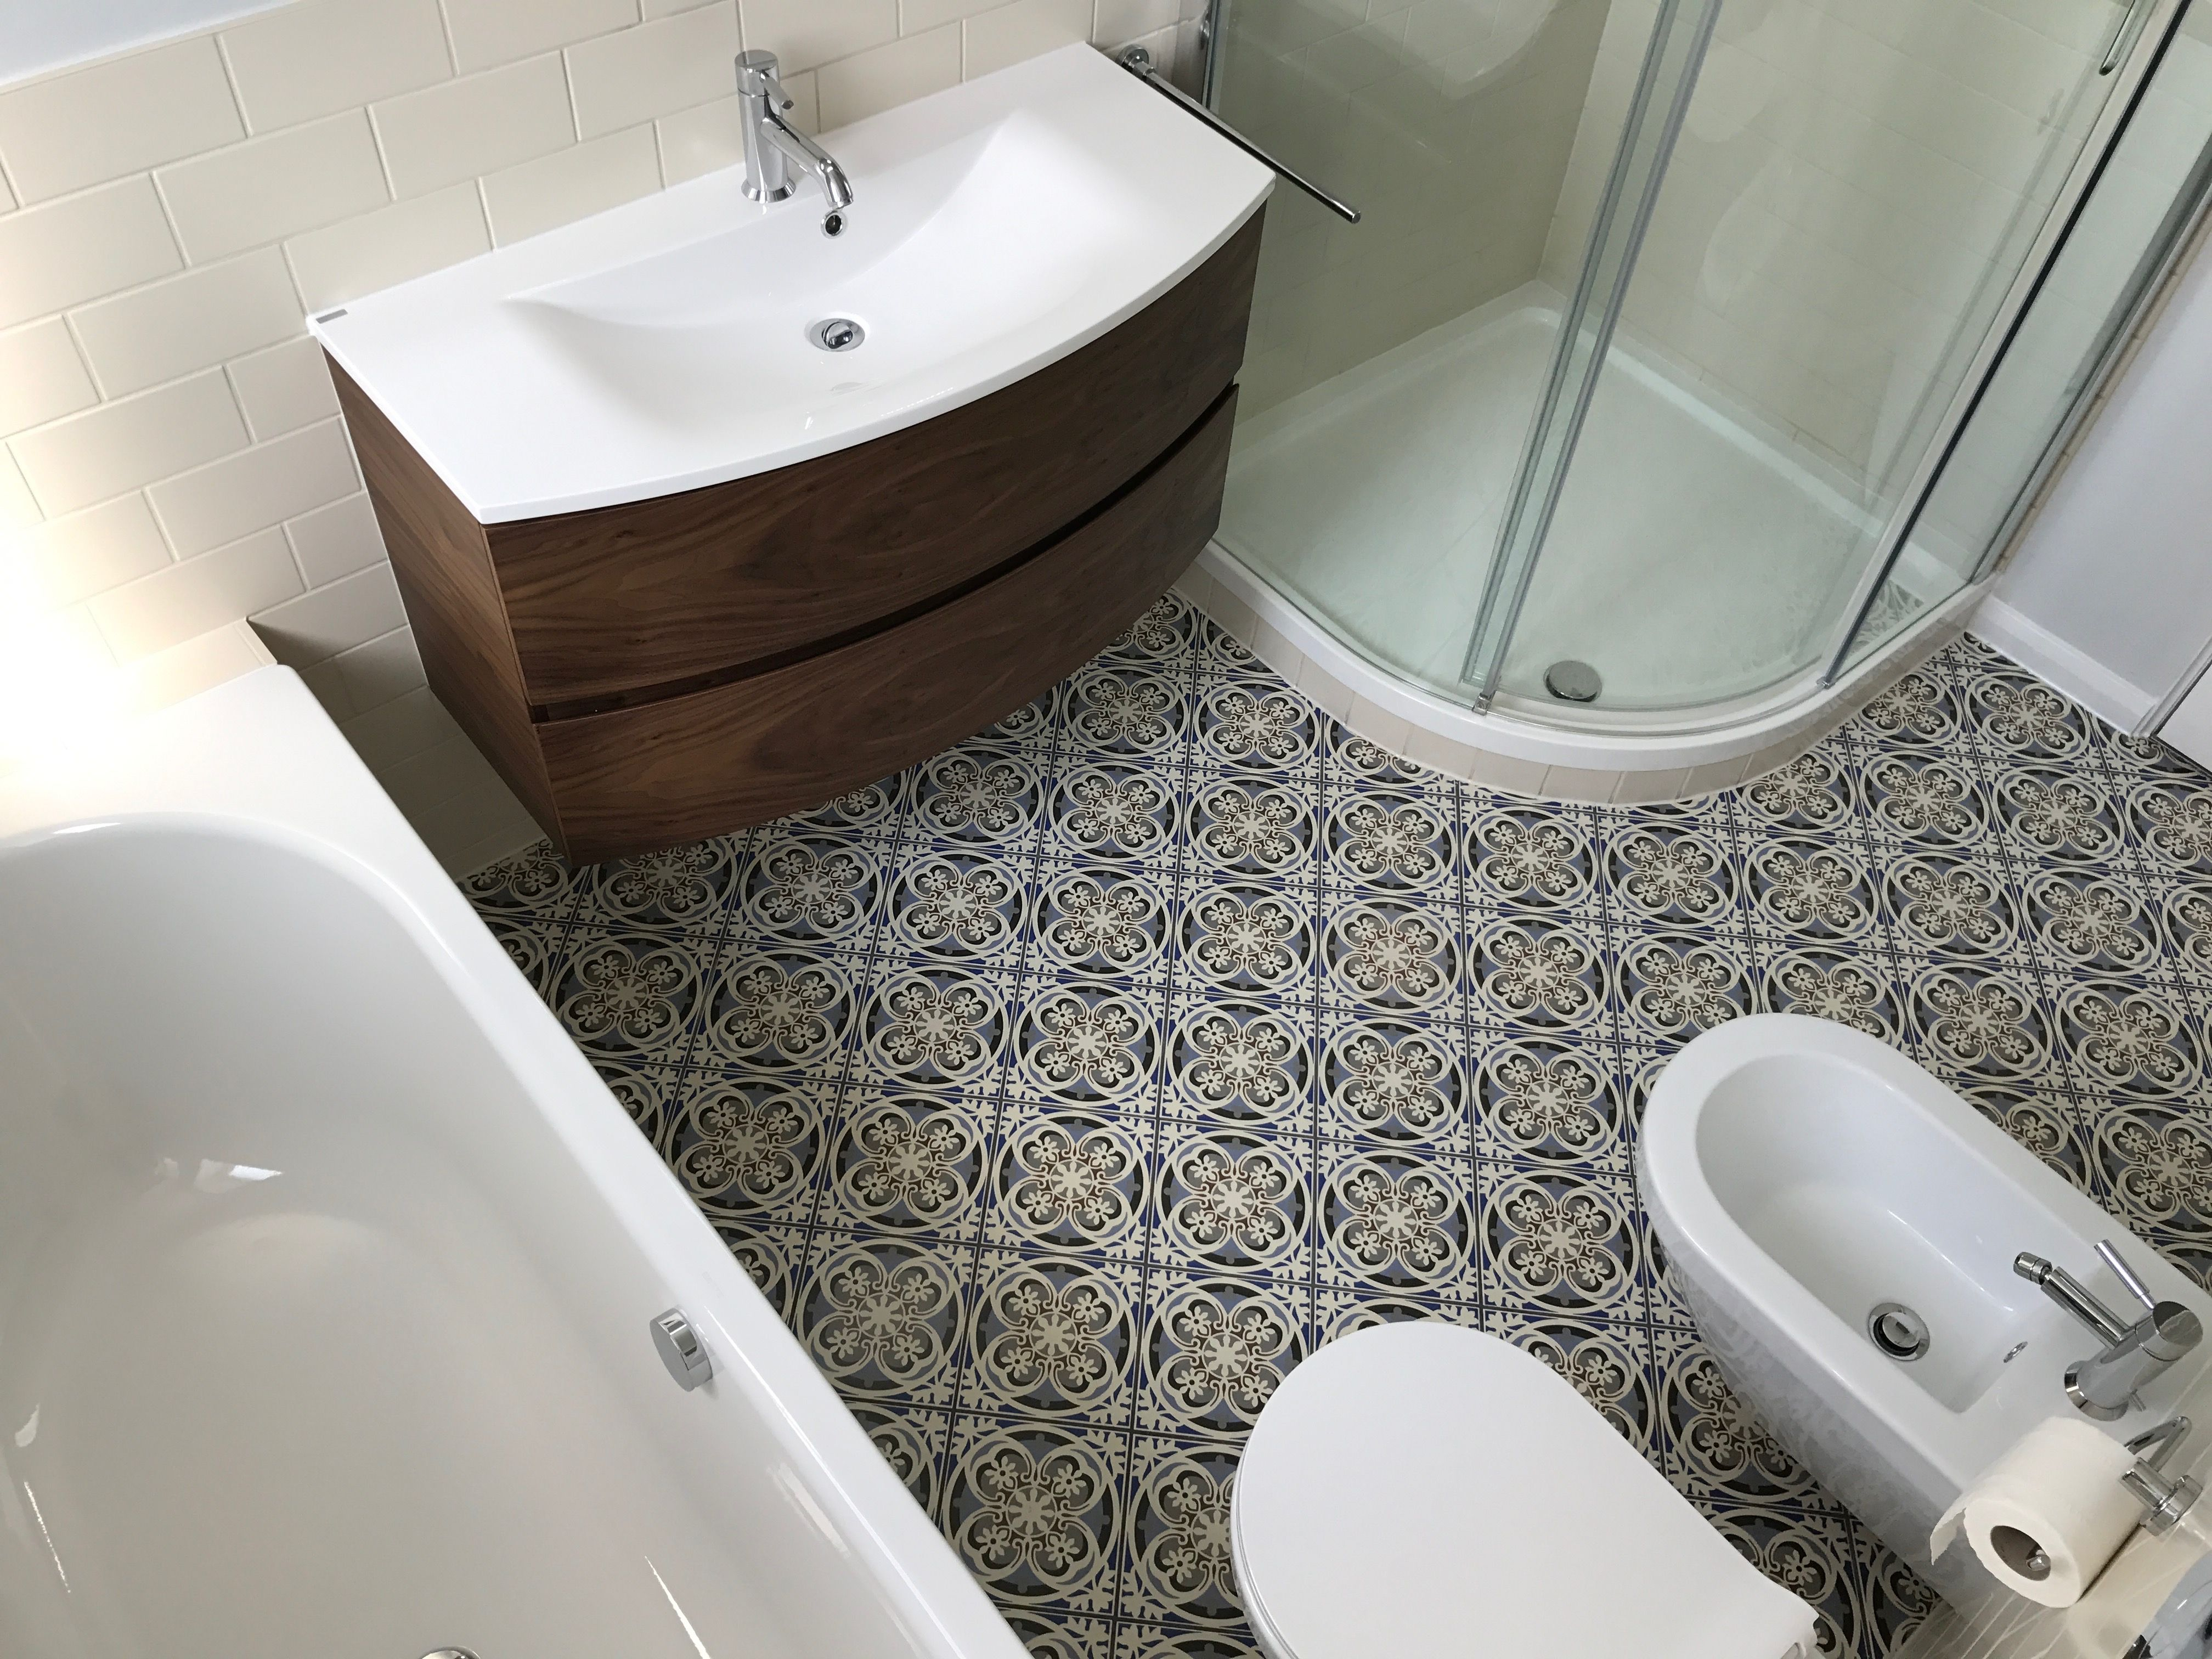 Fired Earth Abbey Fountains tiles on bathroom floor and Architecture cream  Matt tiles on walls